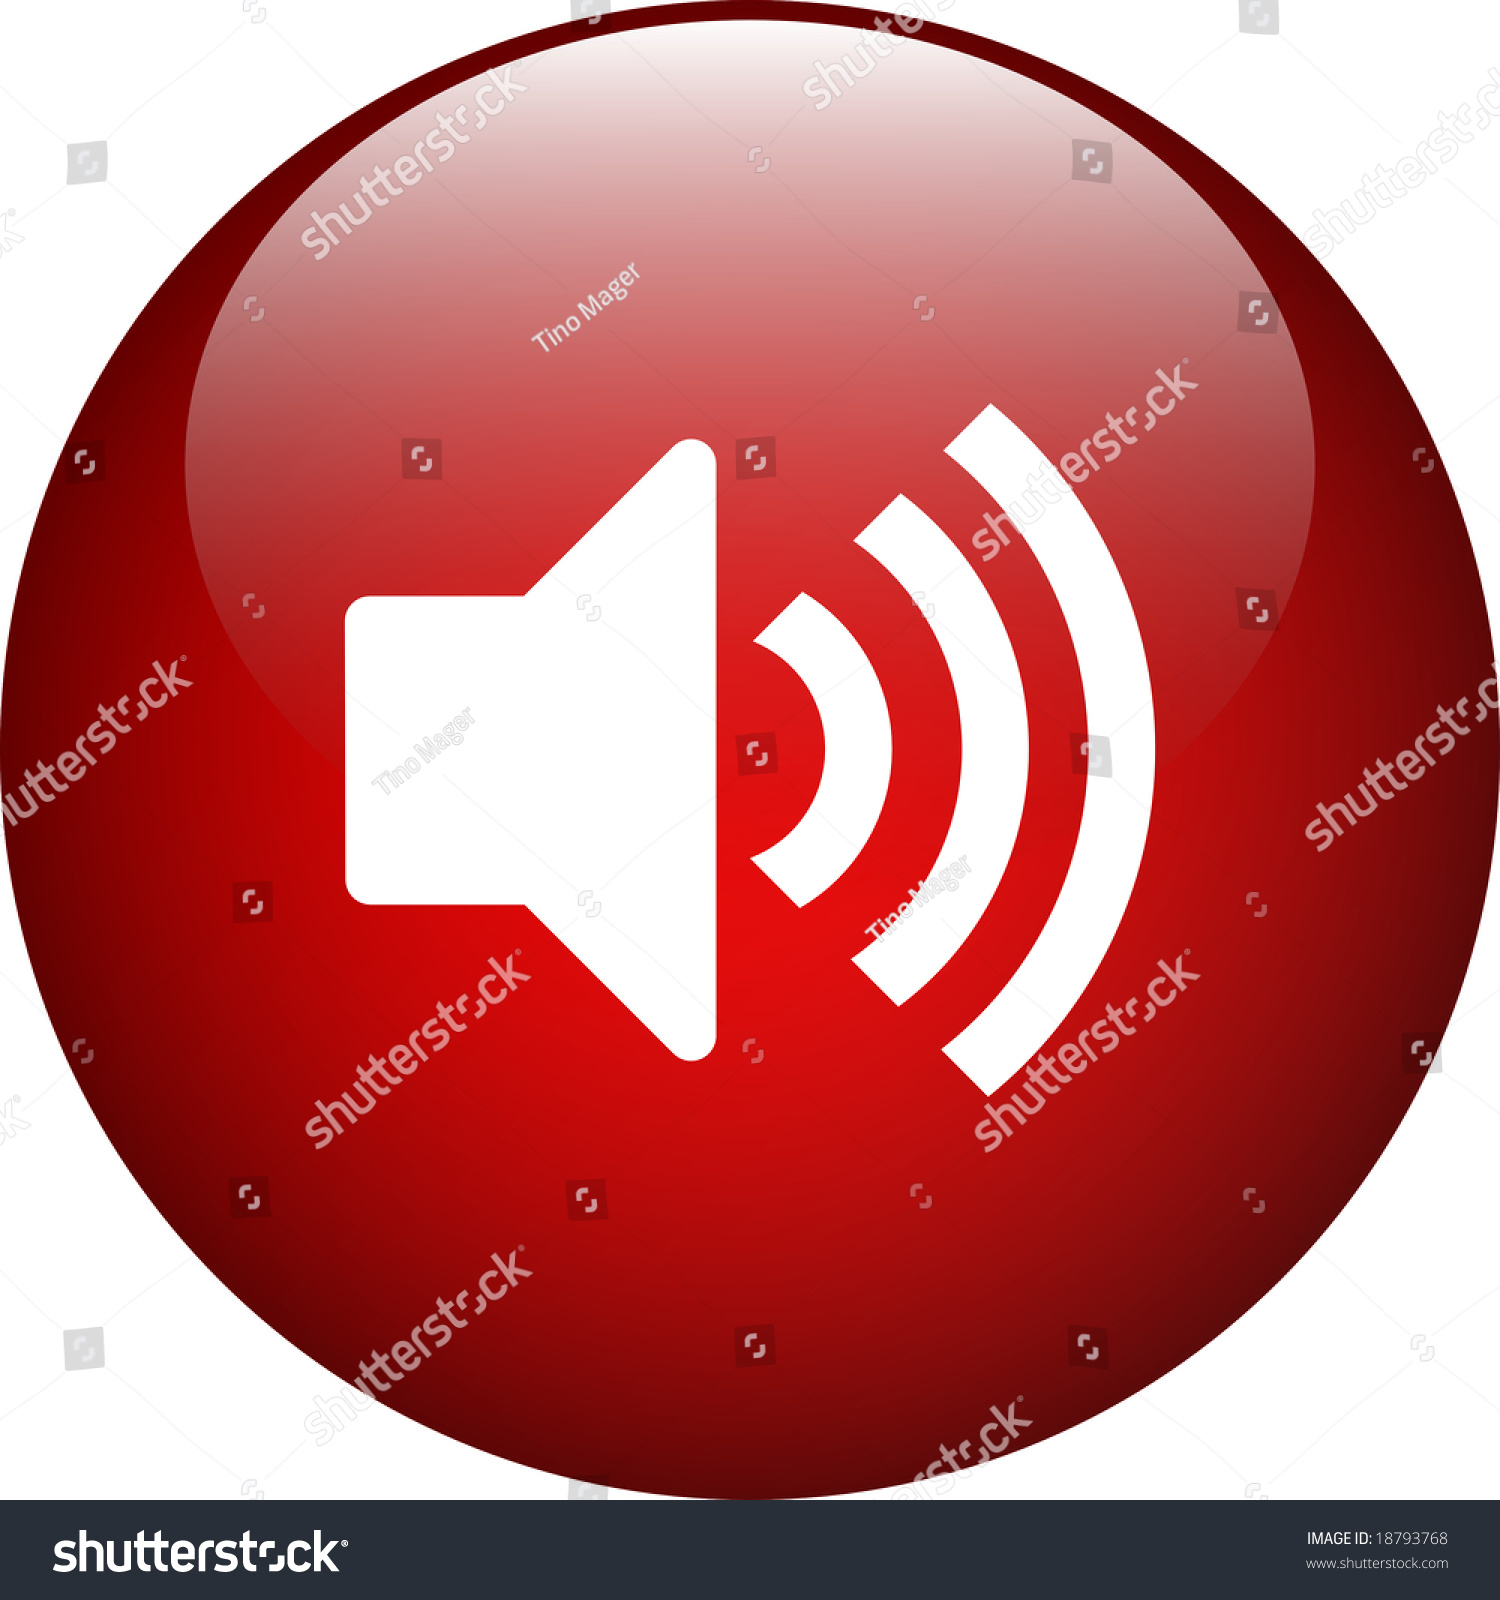 Volume Control Button : Red navigation volume control on button stock photo